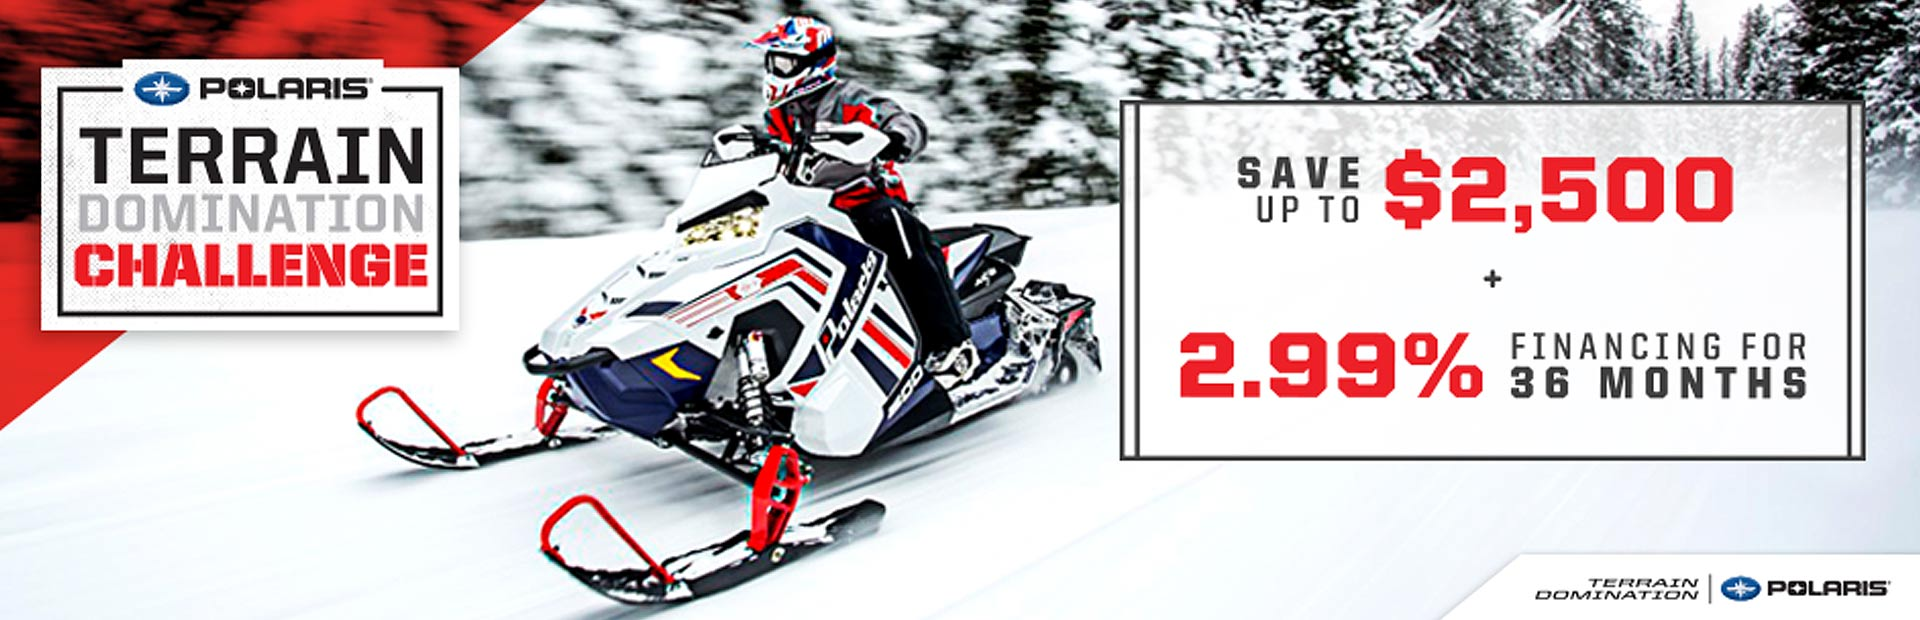 Polaris Industries: Big Savings on Non-Current Snowmobiles